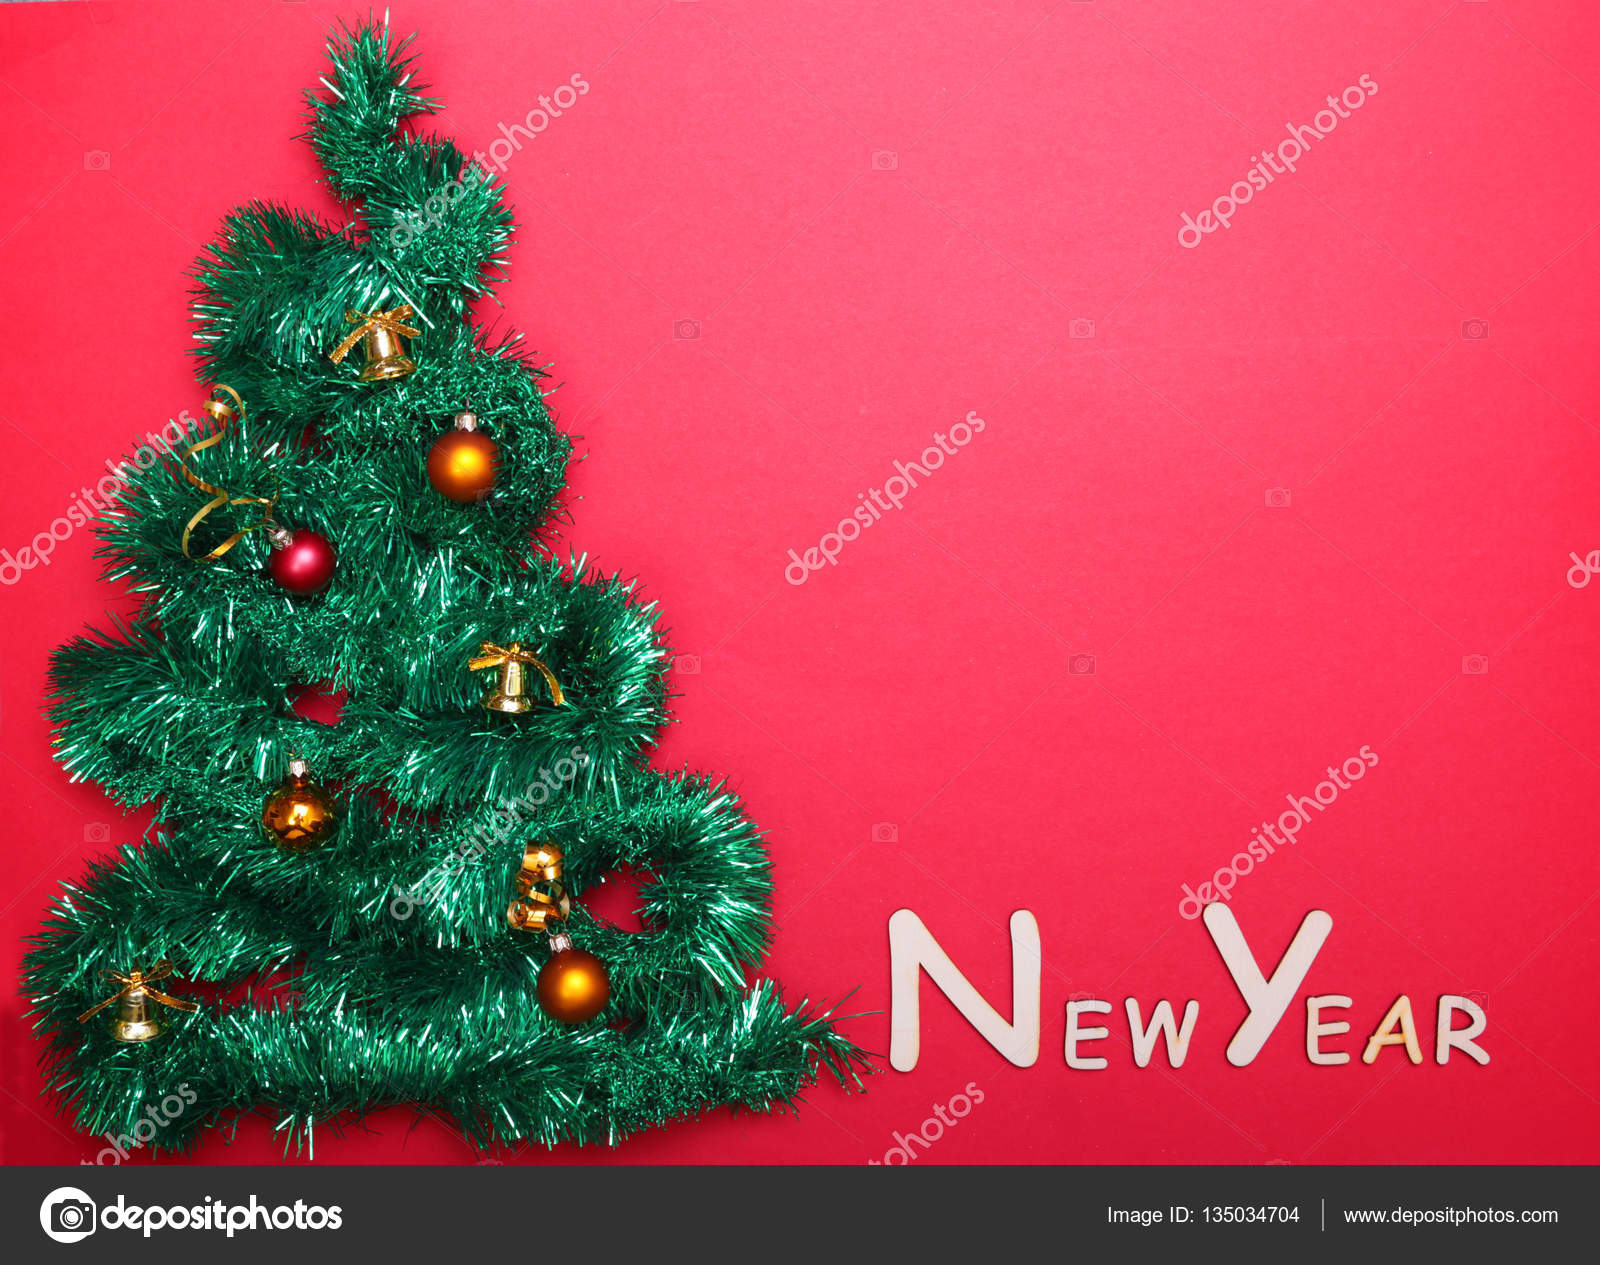 Small Decorated Christmas Tree With Happy New Year Text On The Wall Stock Photo C Vicby 135034704